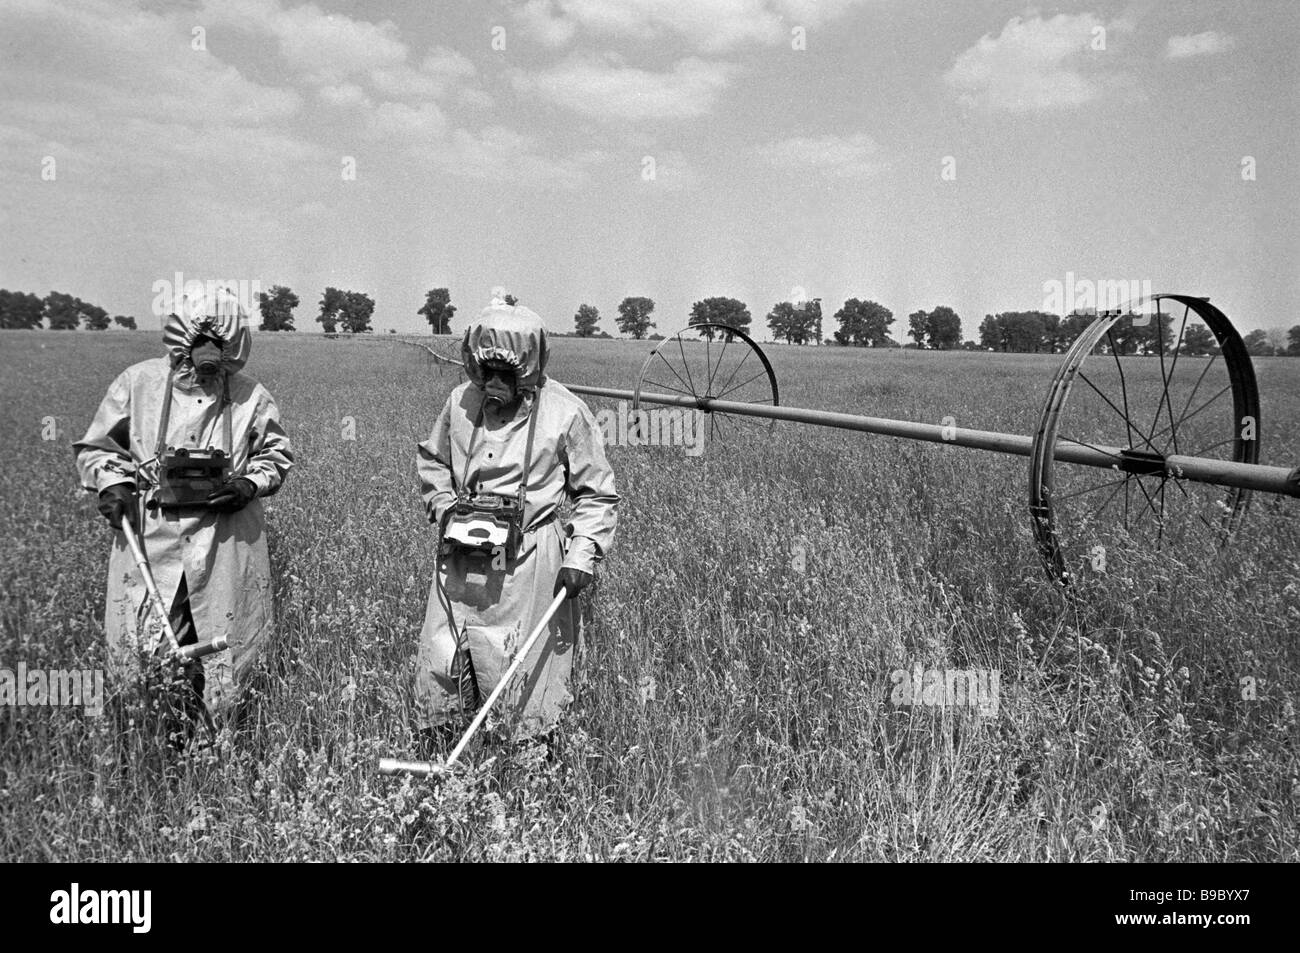 Health physicists in special suits controlling radiation in the fields of the Chernobyl disaster area - Stock Image